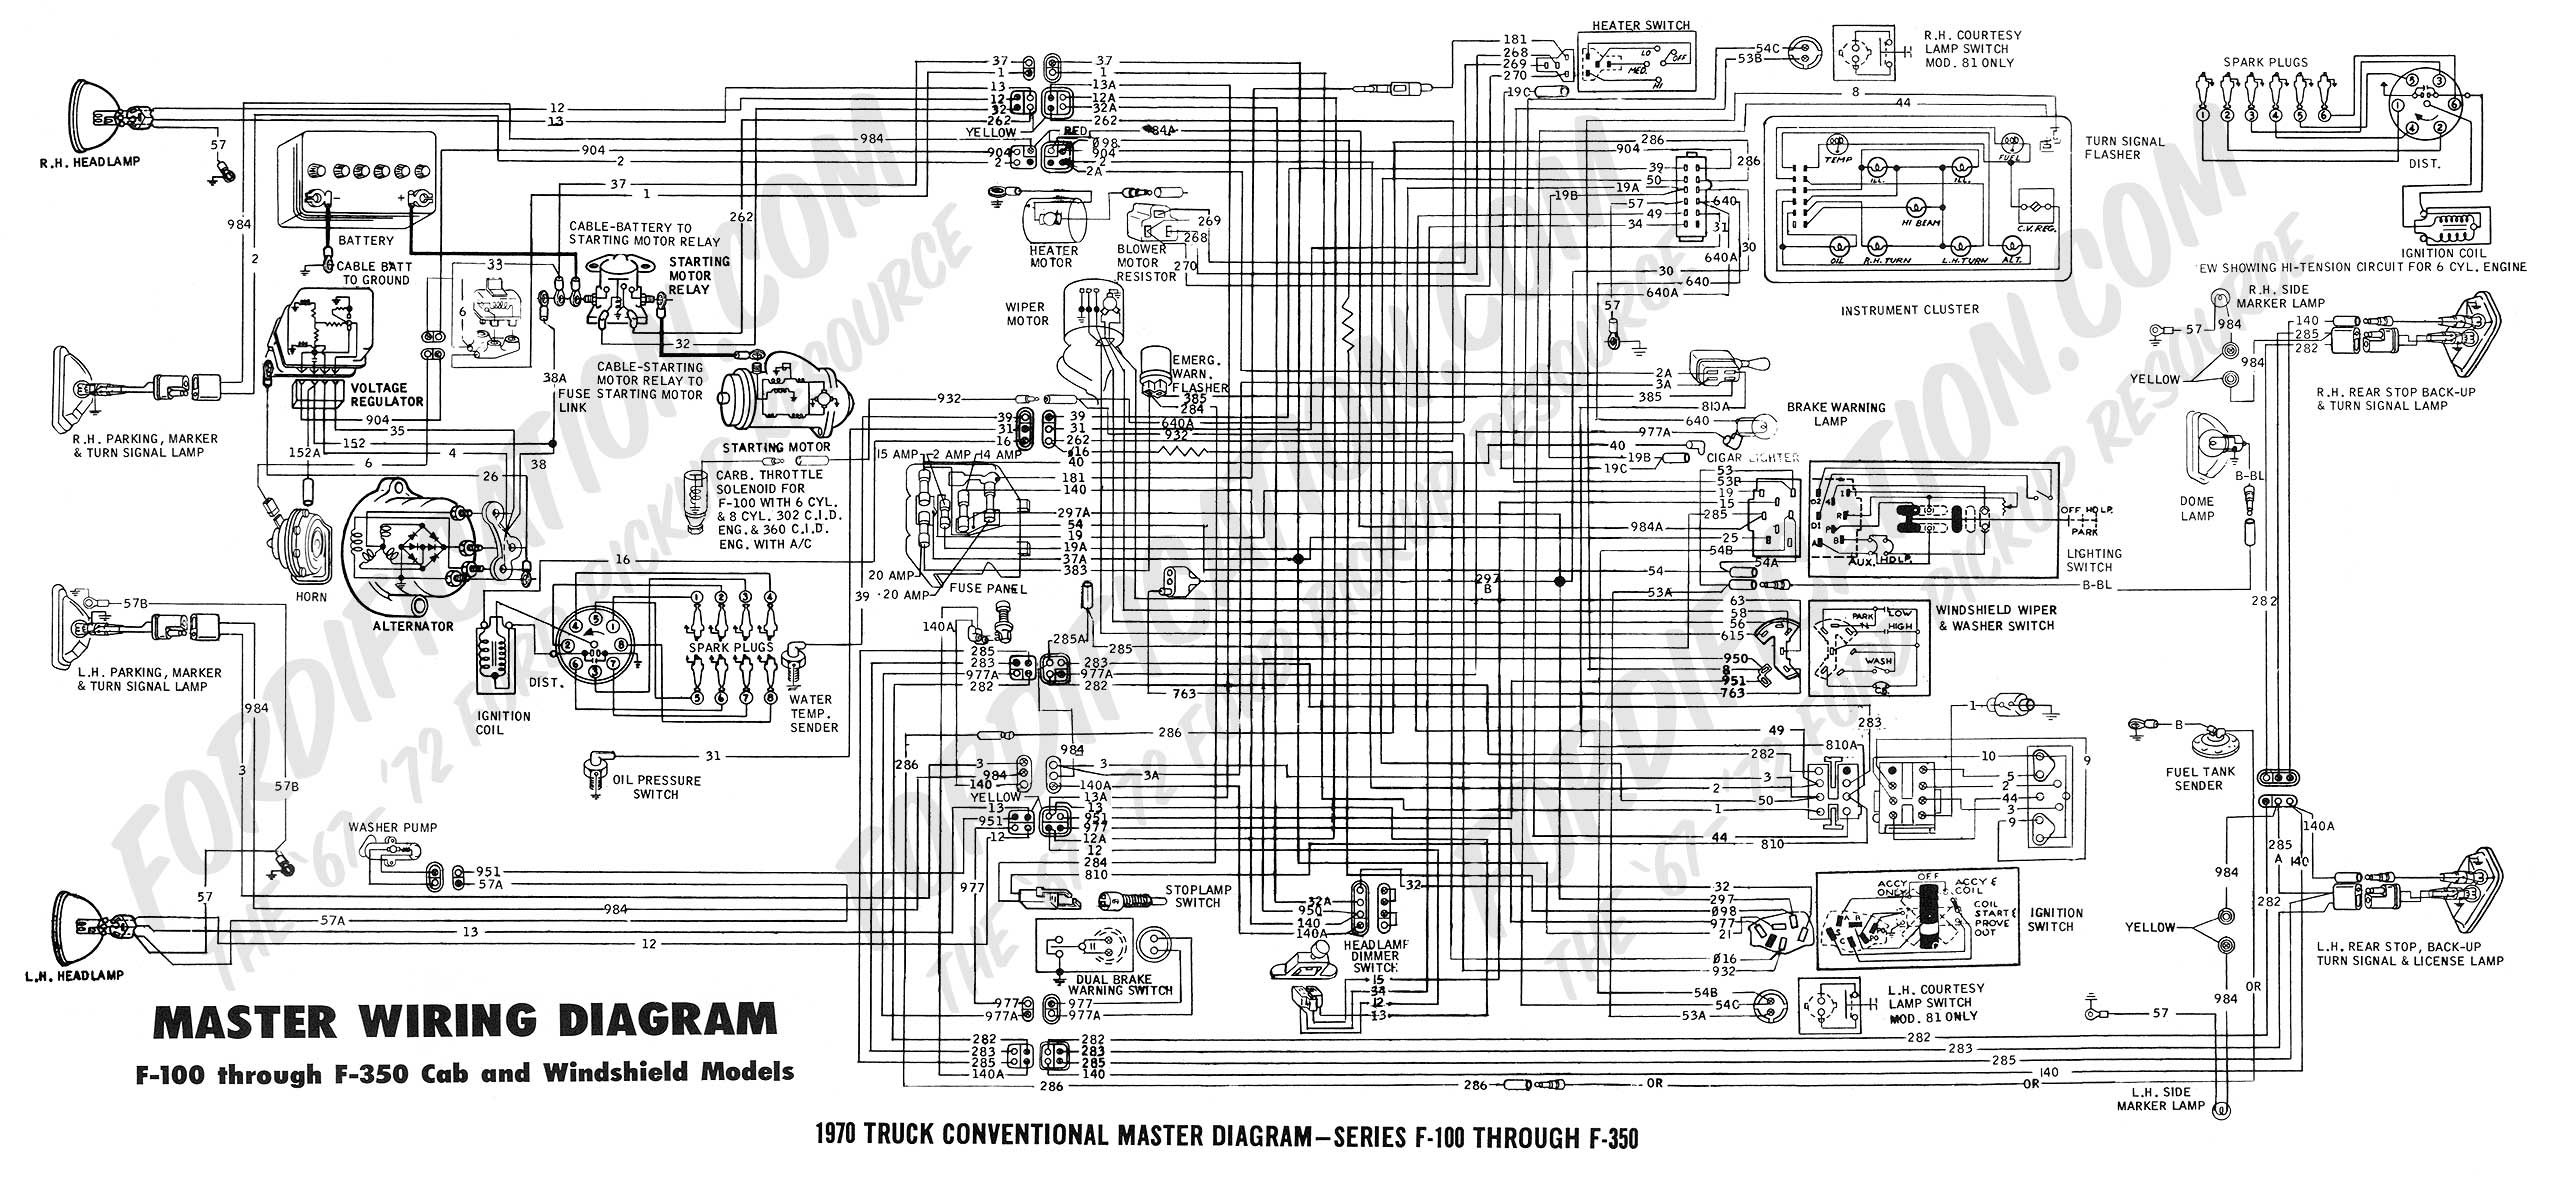 1973 Ranchero Electrical Wiring Diagrams Ford 1977 Archive Of Automotive 1967 Truck Steering Column Diagram Data Schema Rh Site De Joueurs Com